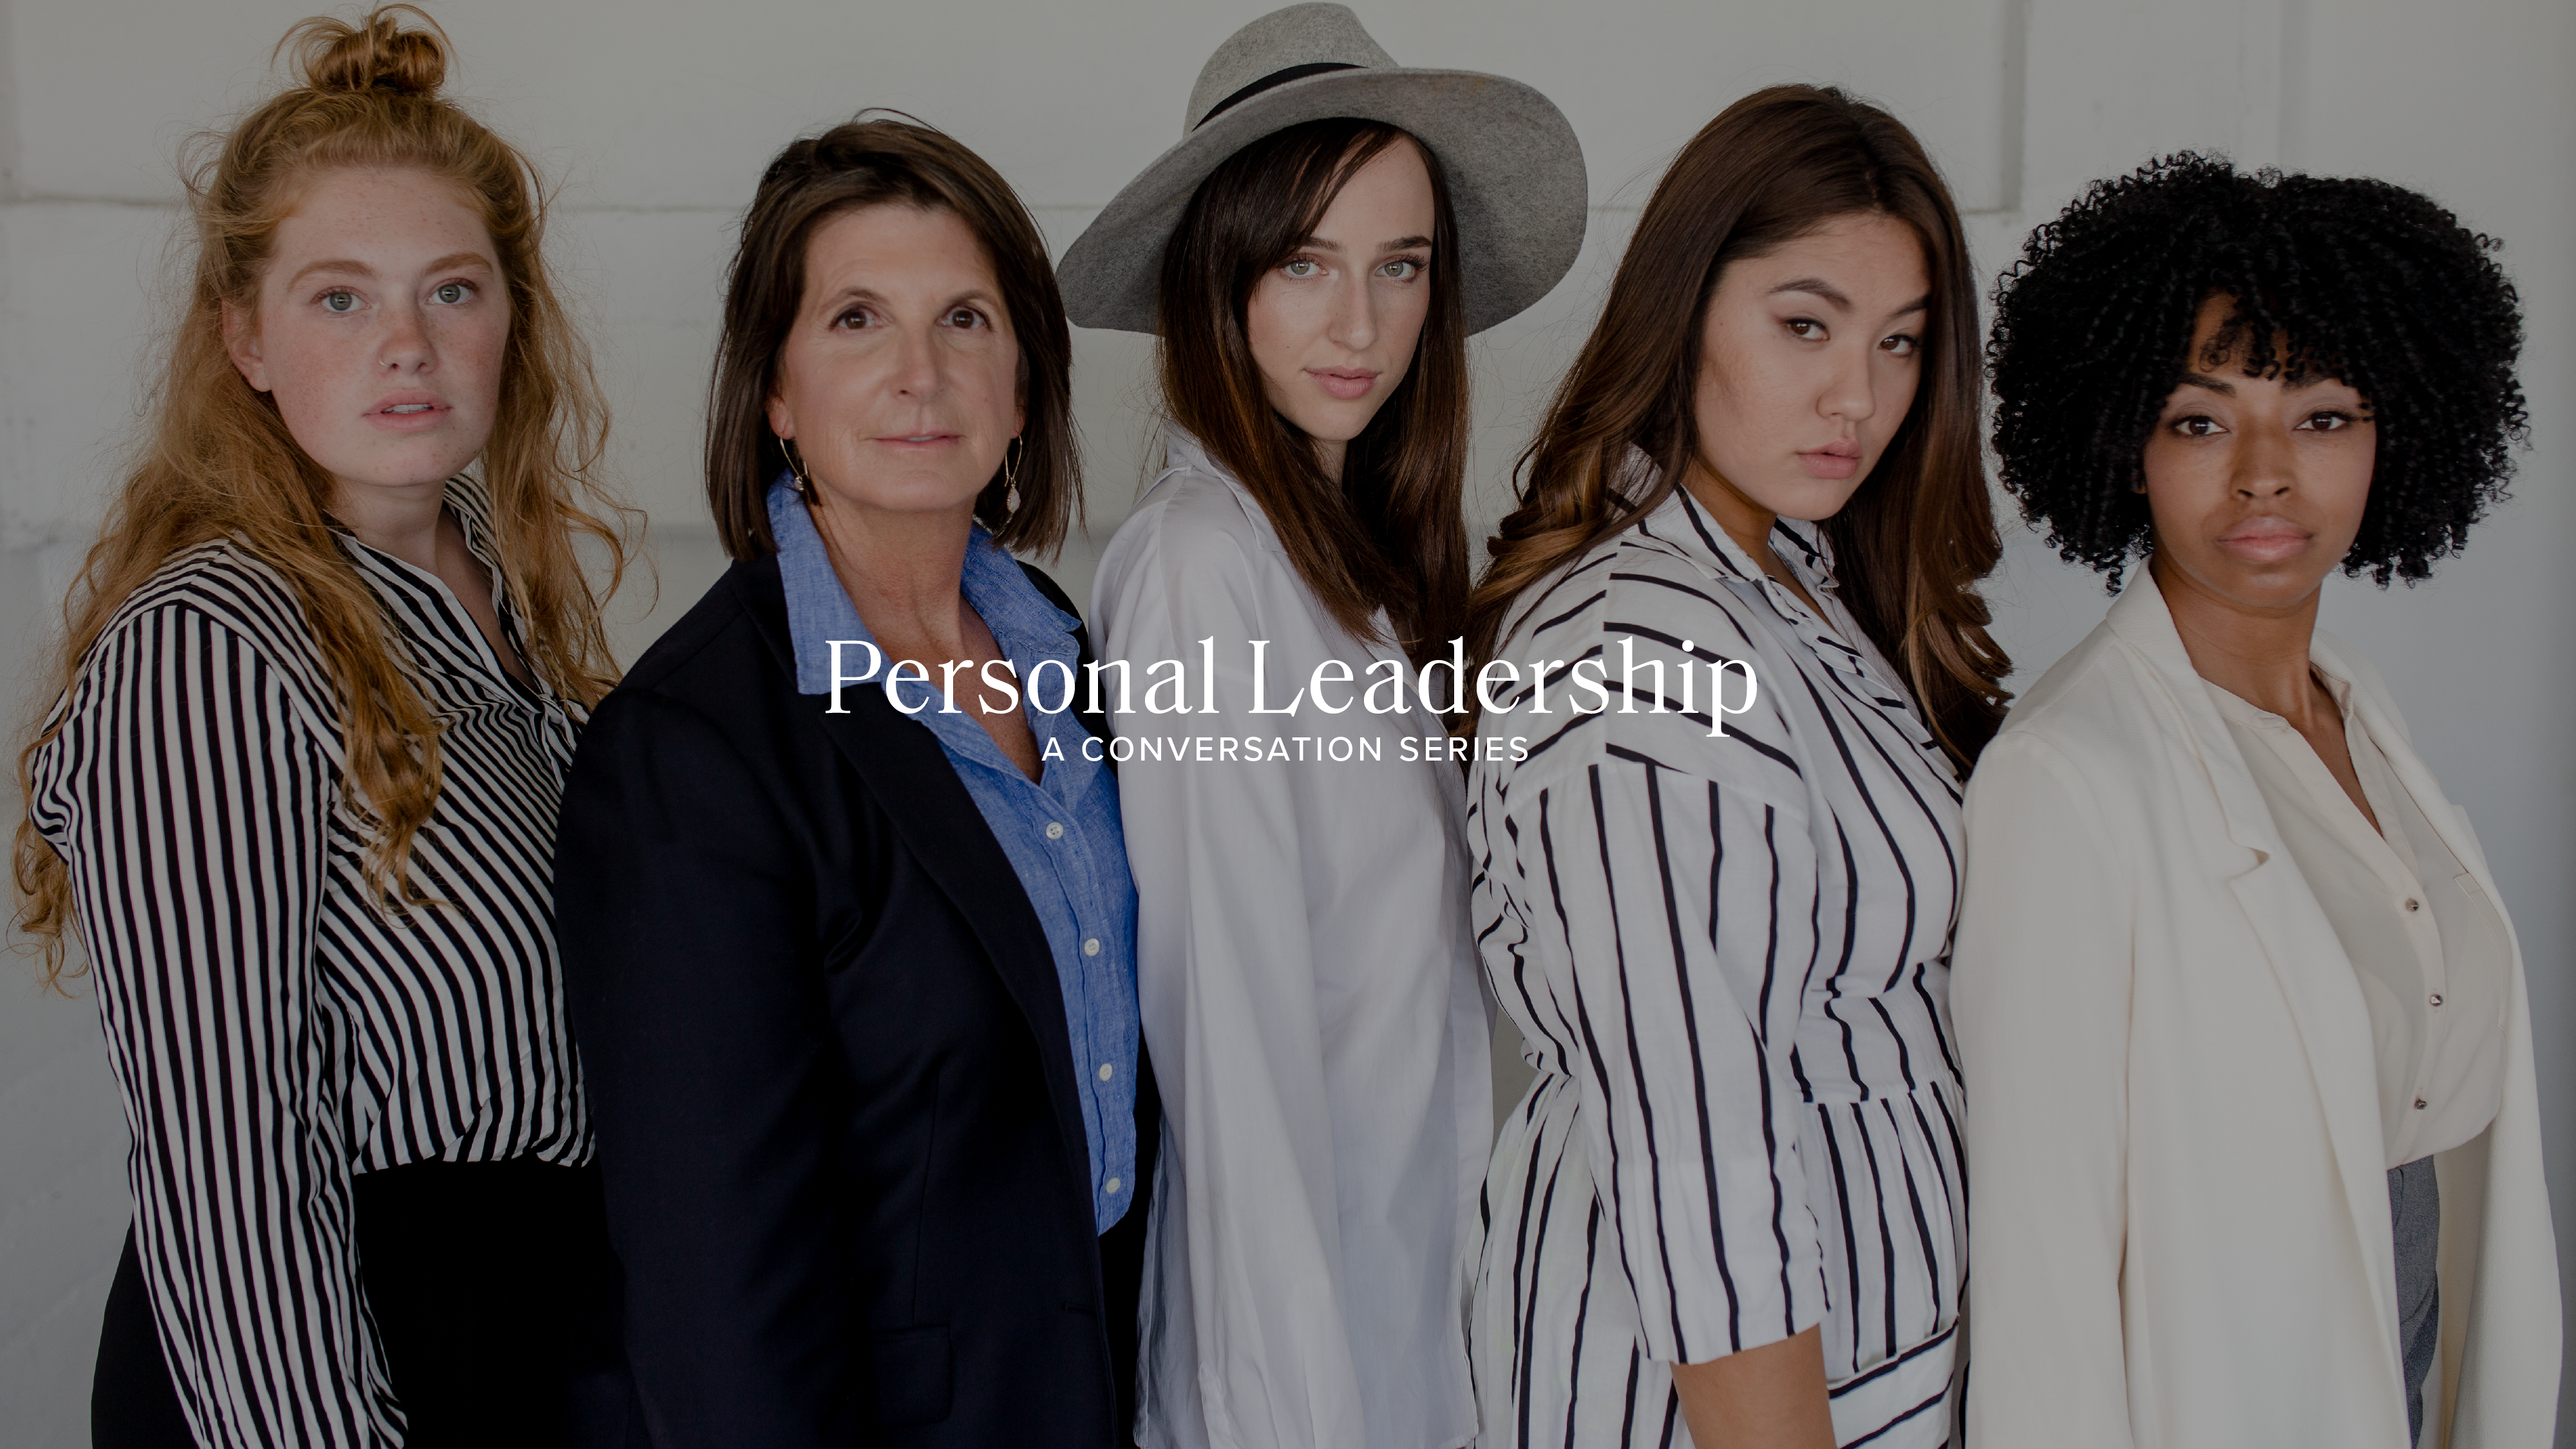 New from Propel Women: PERSONAL LEADERSHIP Conversation Series